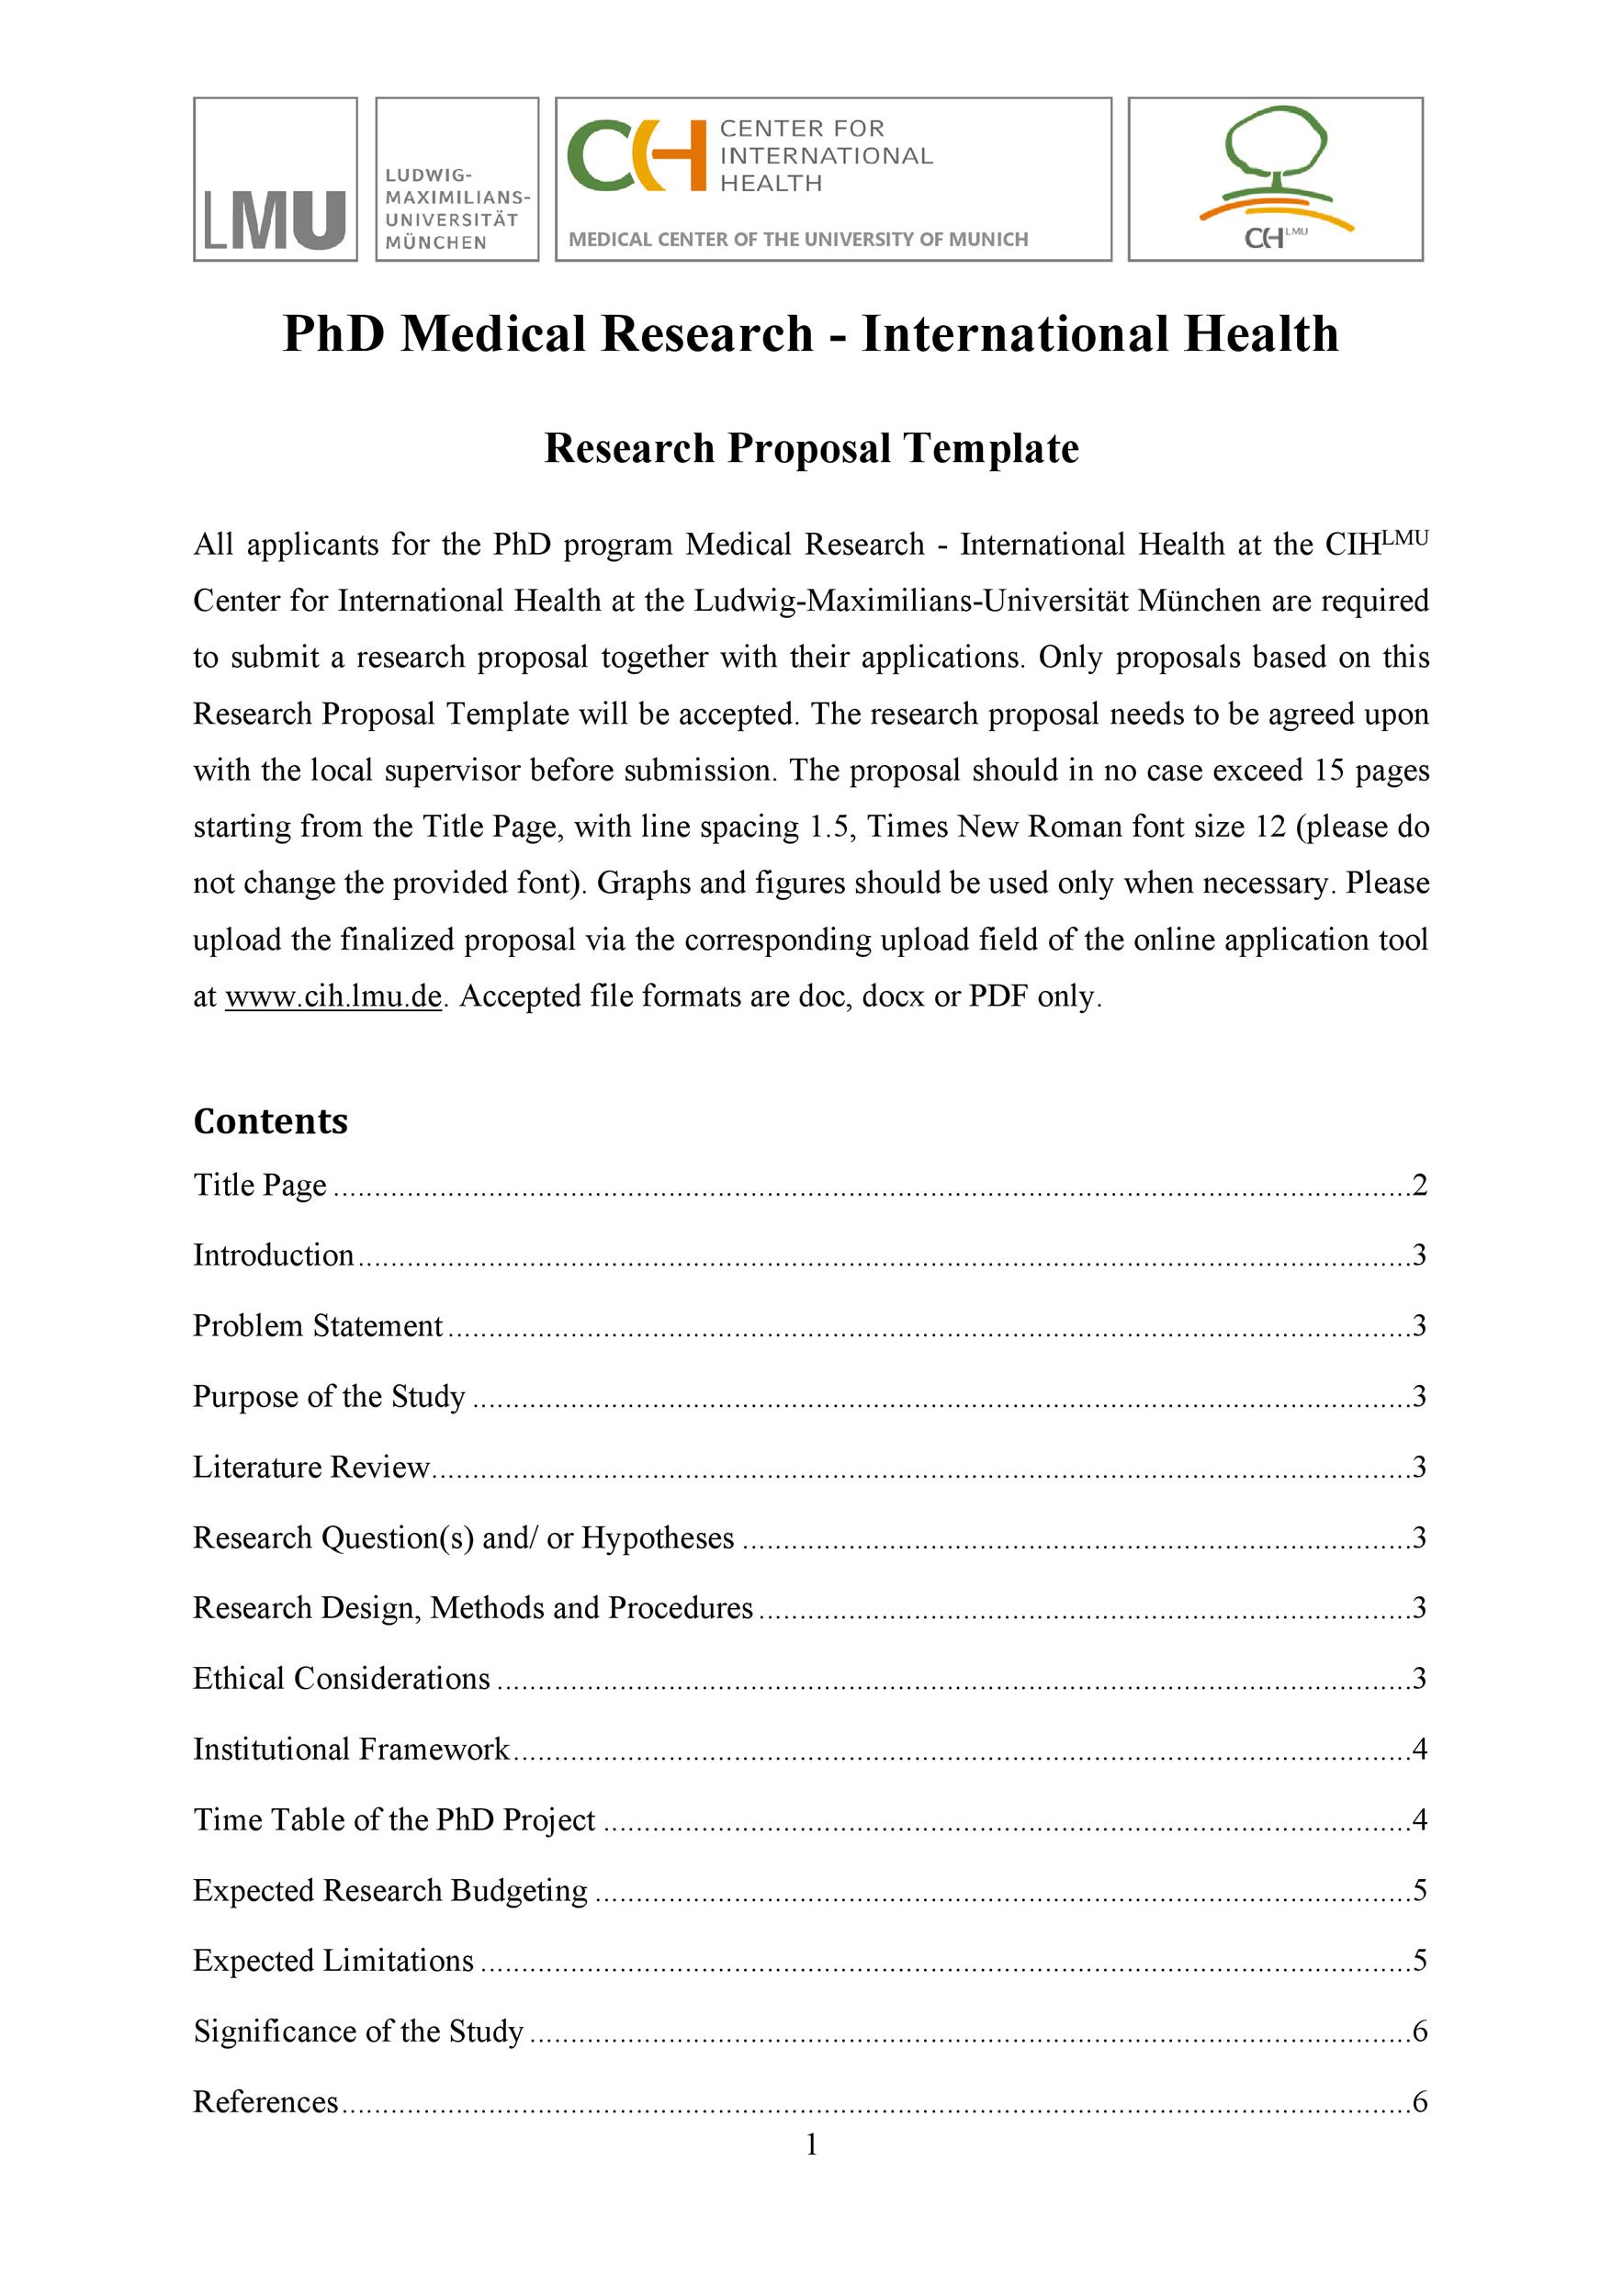 Free Research Proposal Template 19